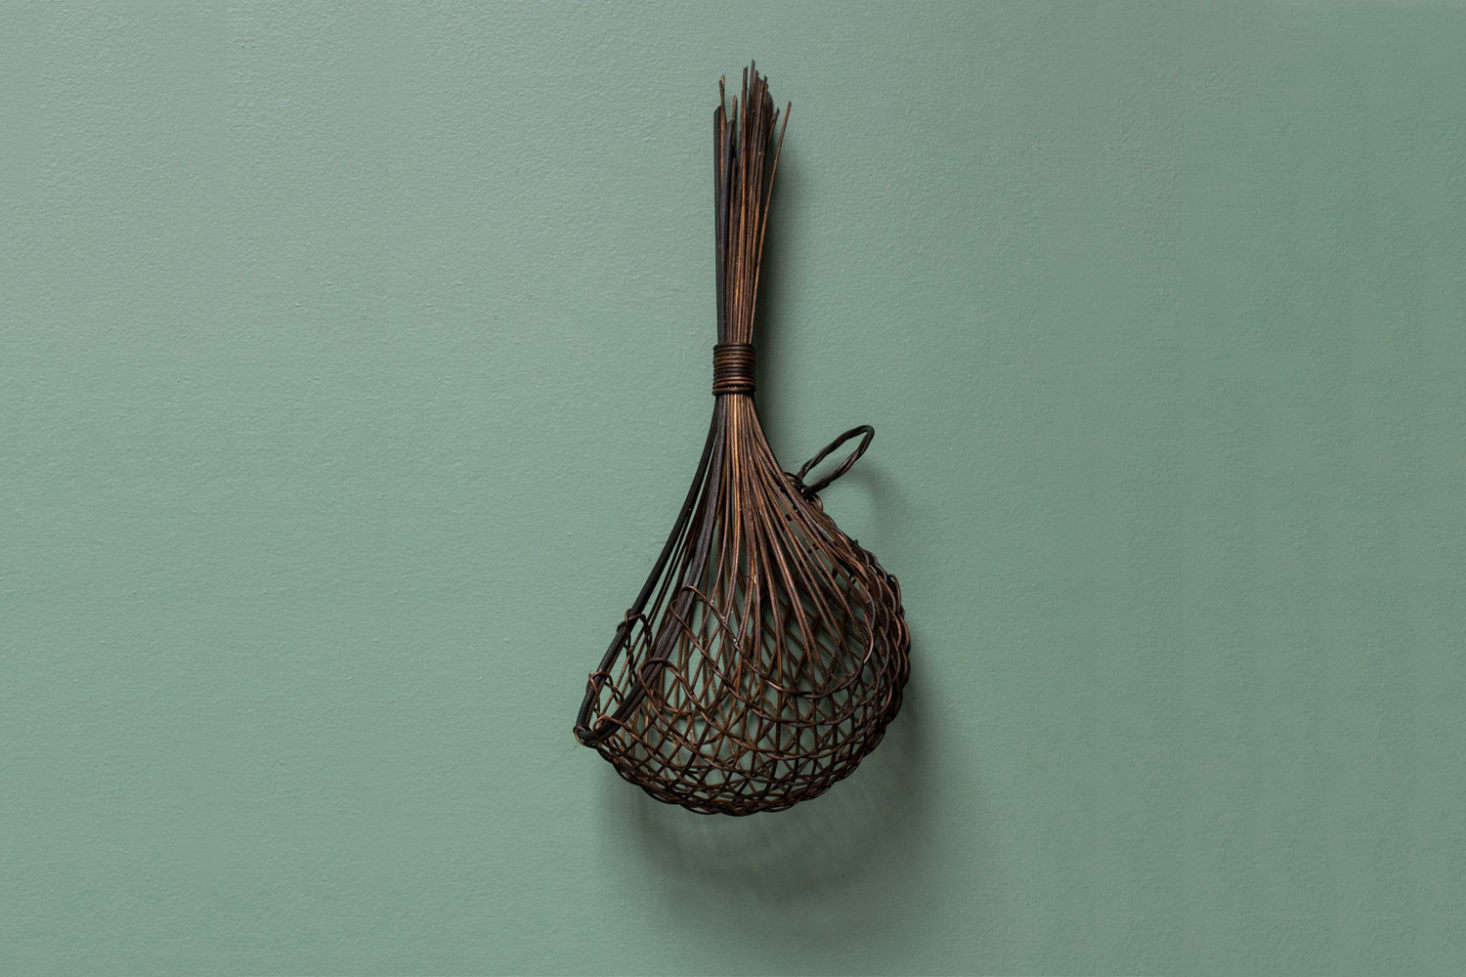 Working with dyed jute and cane, Auckland artist Ruth Castle weaves Black Garlic Baskets in three sizes starting at $139 for the smallest size. For availability (it's currently sold out), contact Everyday Needs who works with Ruth Castle directly.